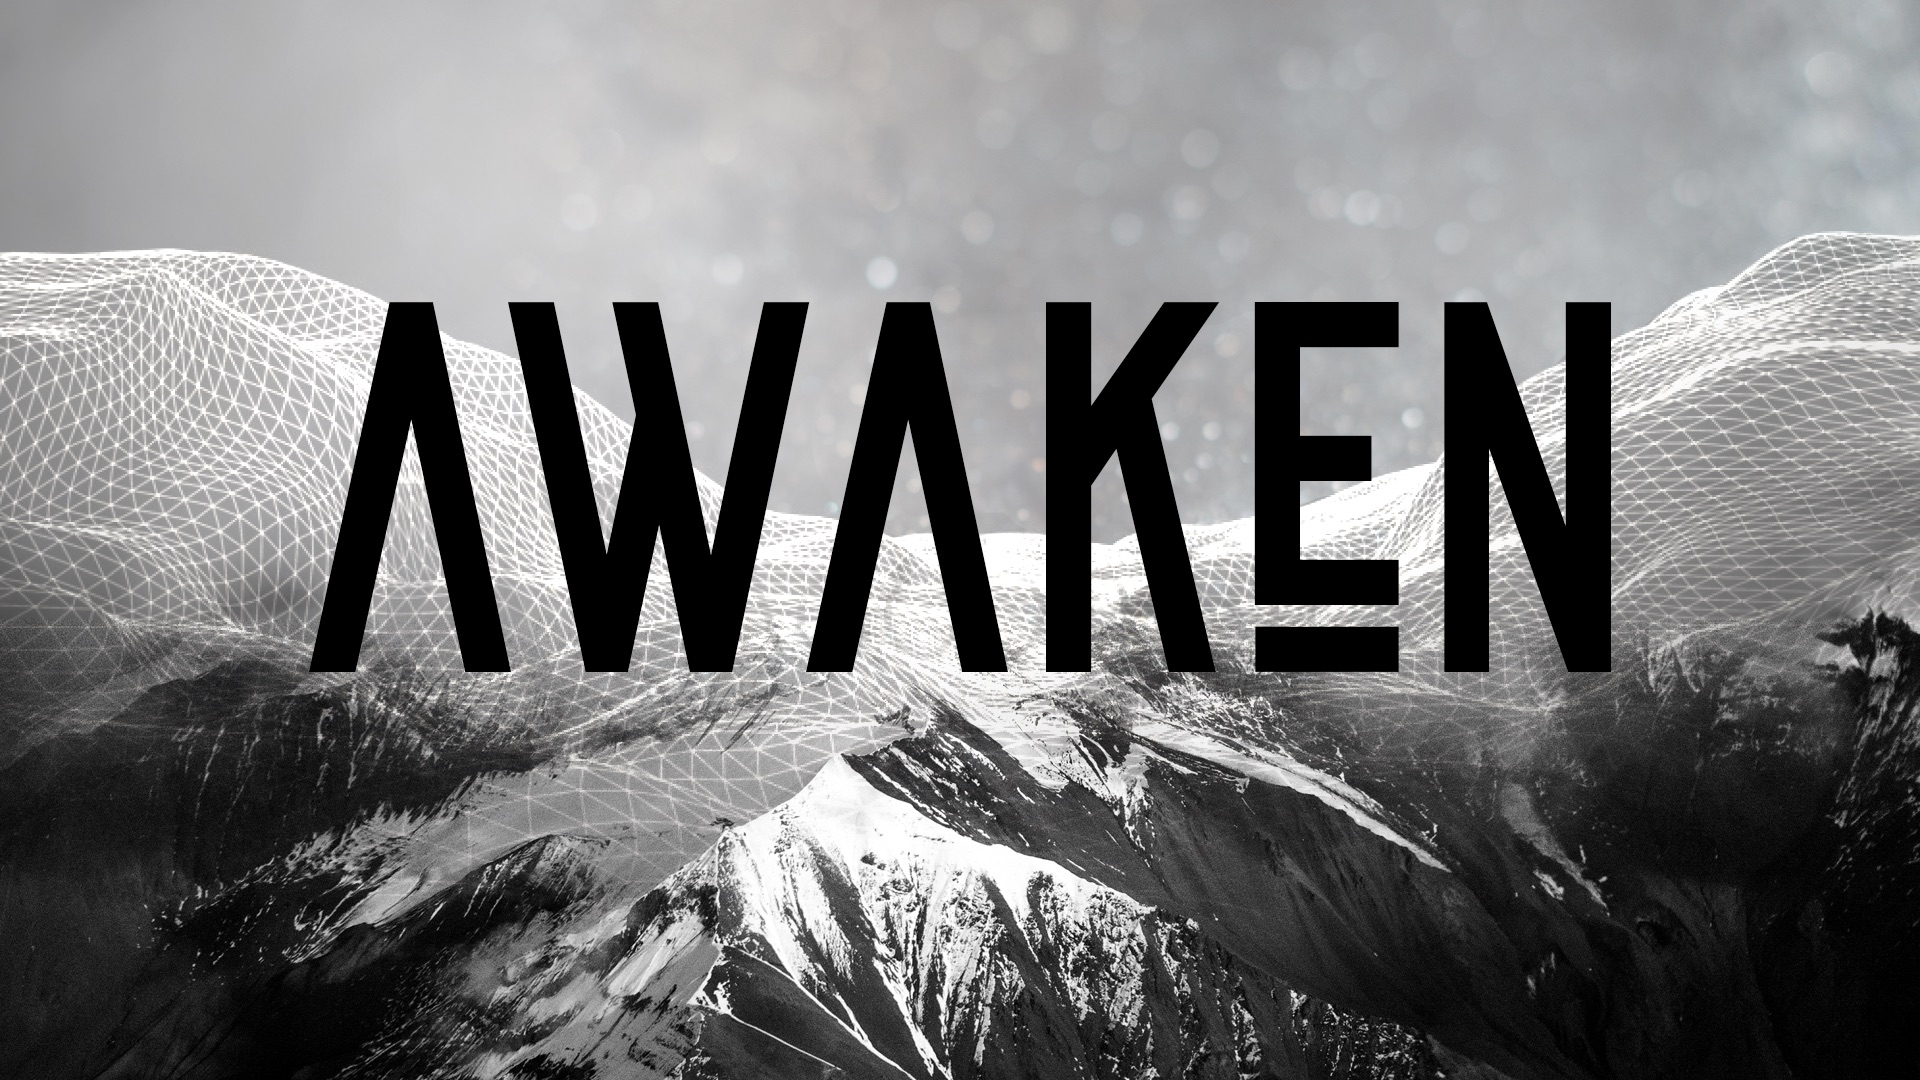 awaken graphic